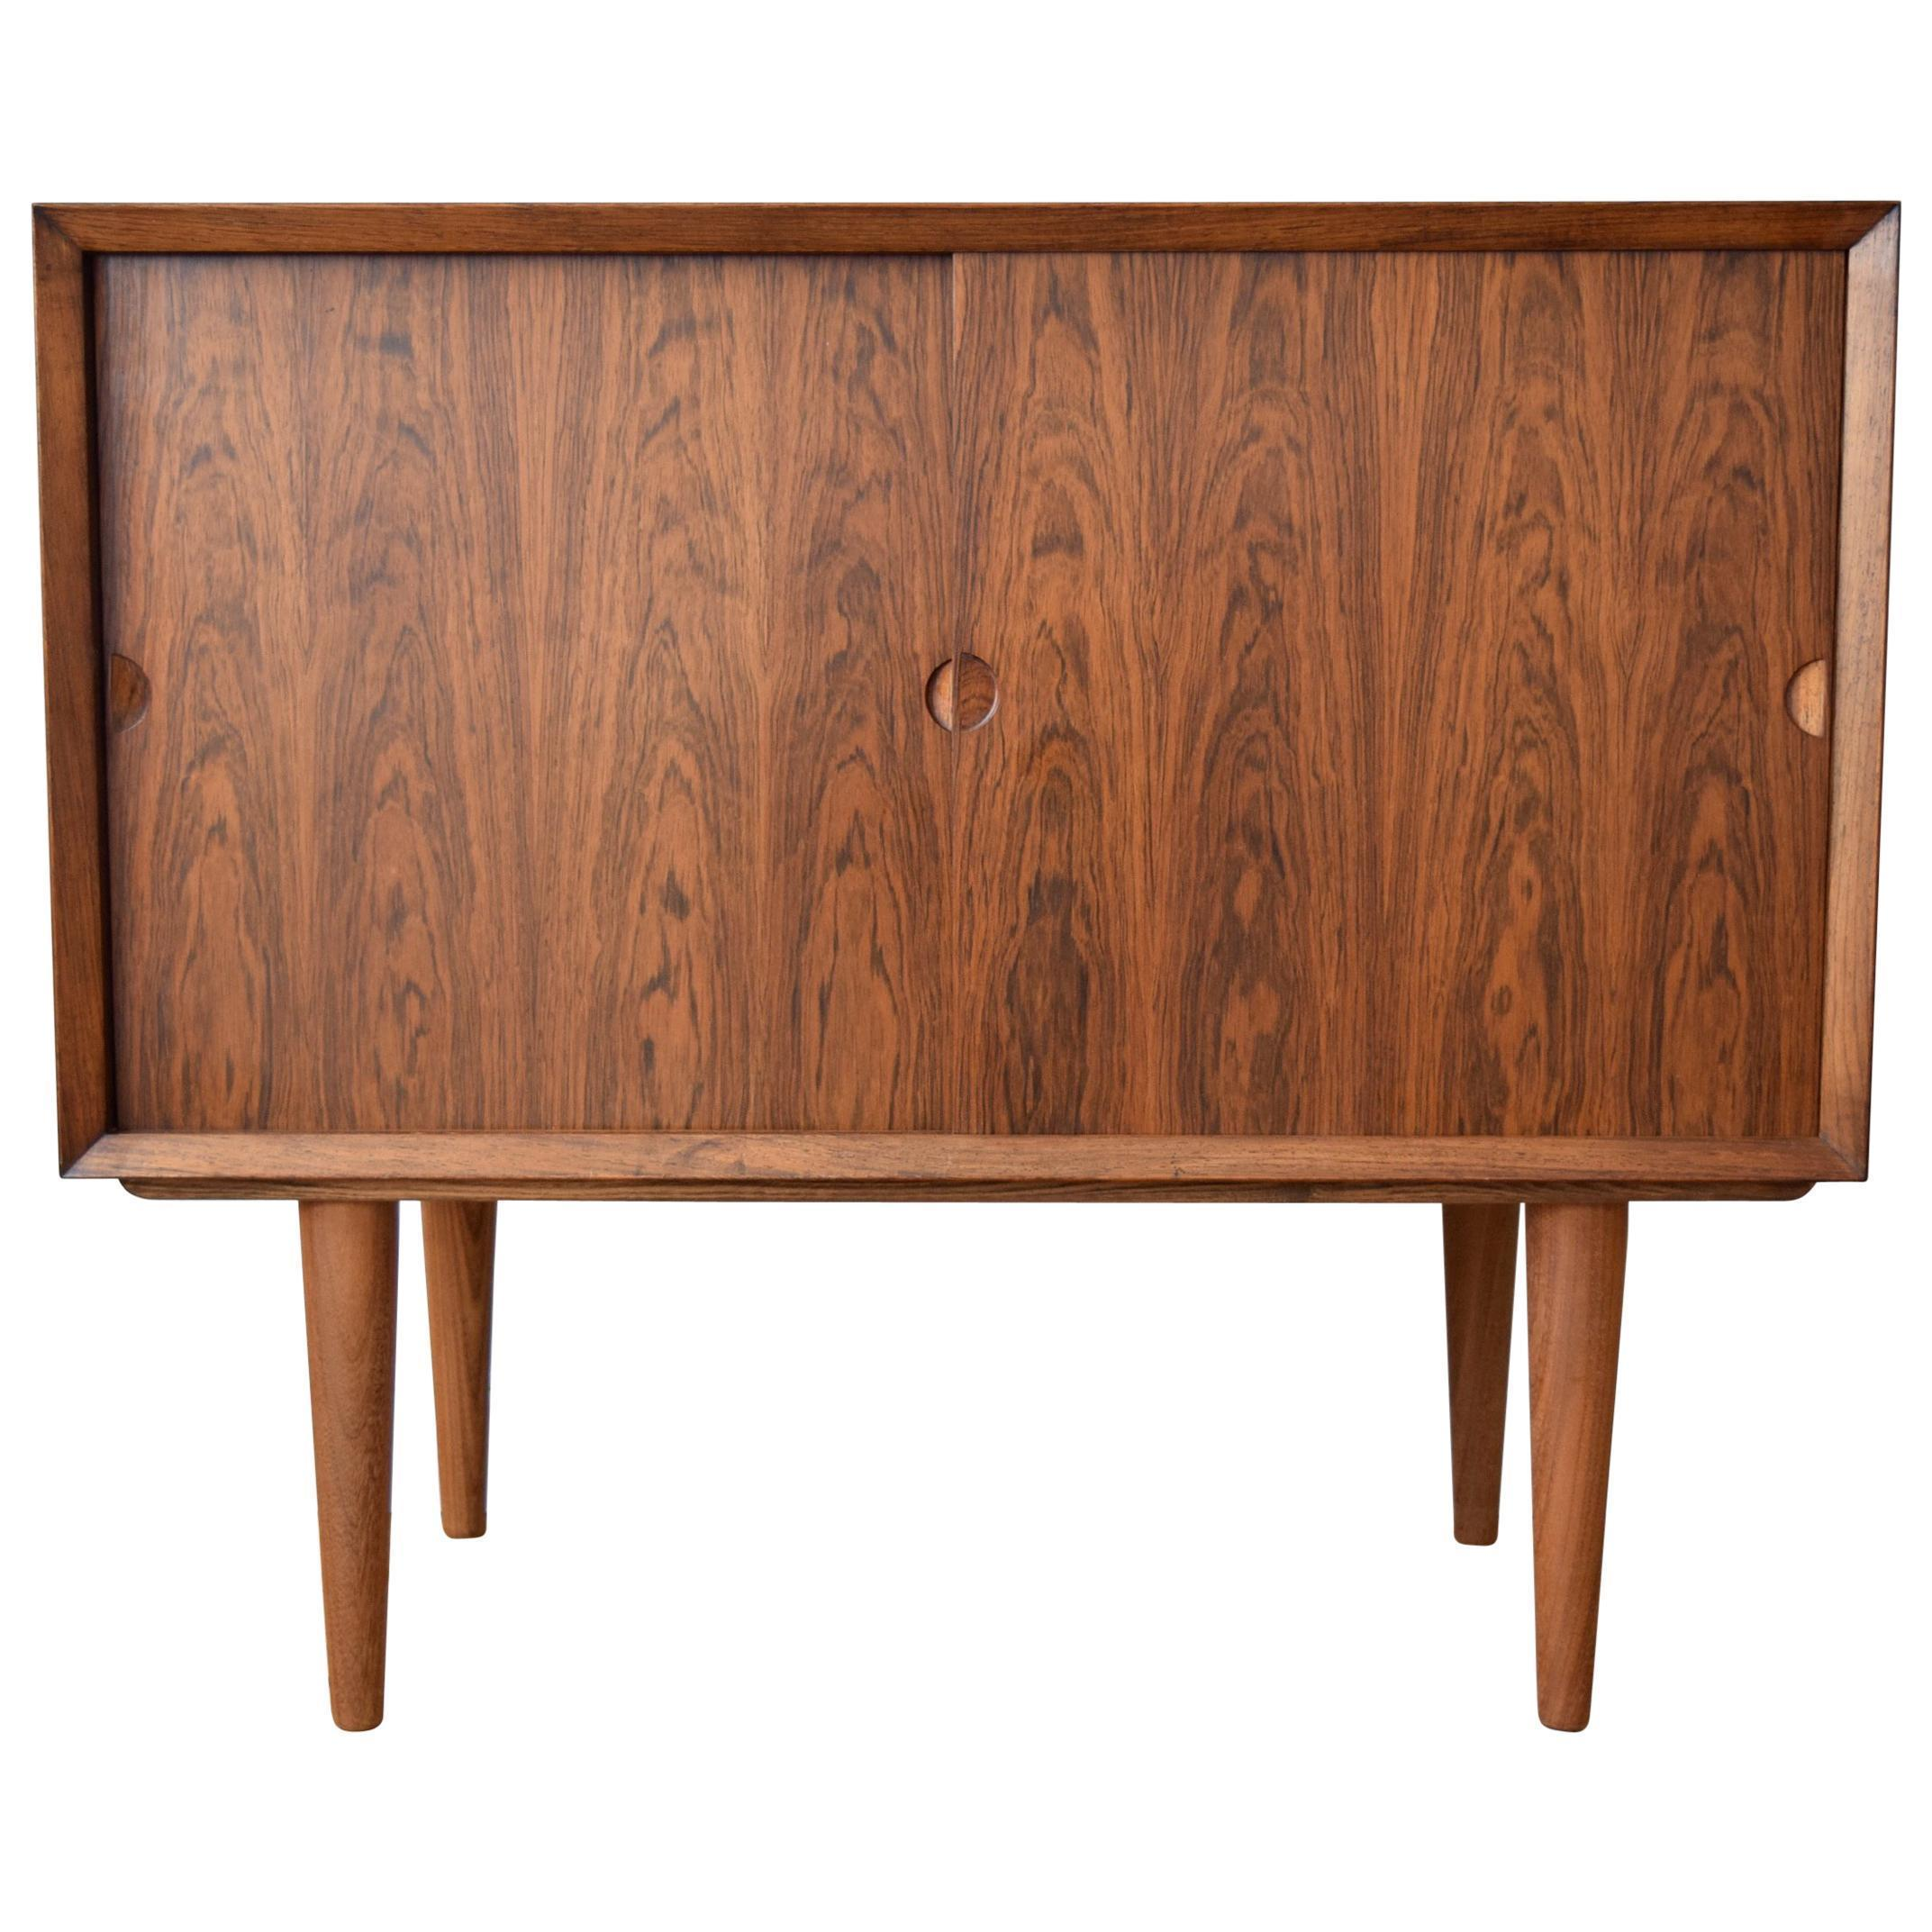 Groovy Danish Midcentury Cado Rosewood Bar Lp Record Cabinet By Poul Cadovius 1965 Download Free Architecture Designs Scobabritishbridgeorg